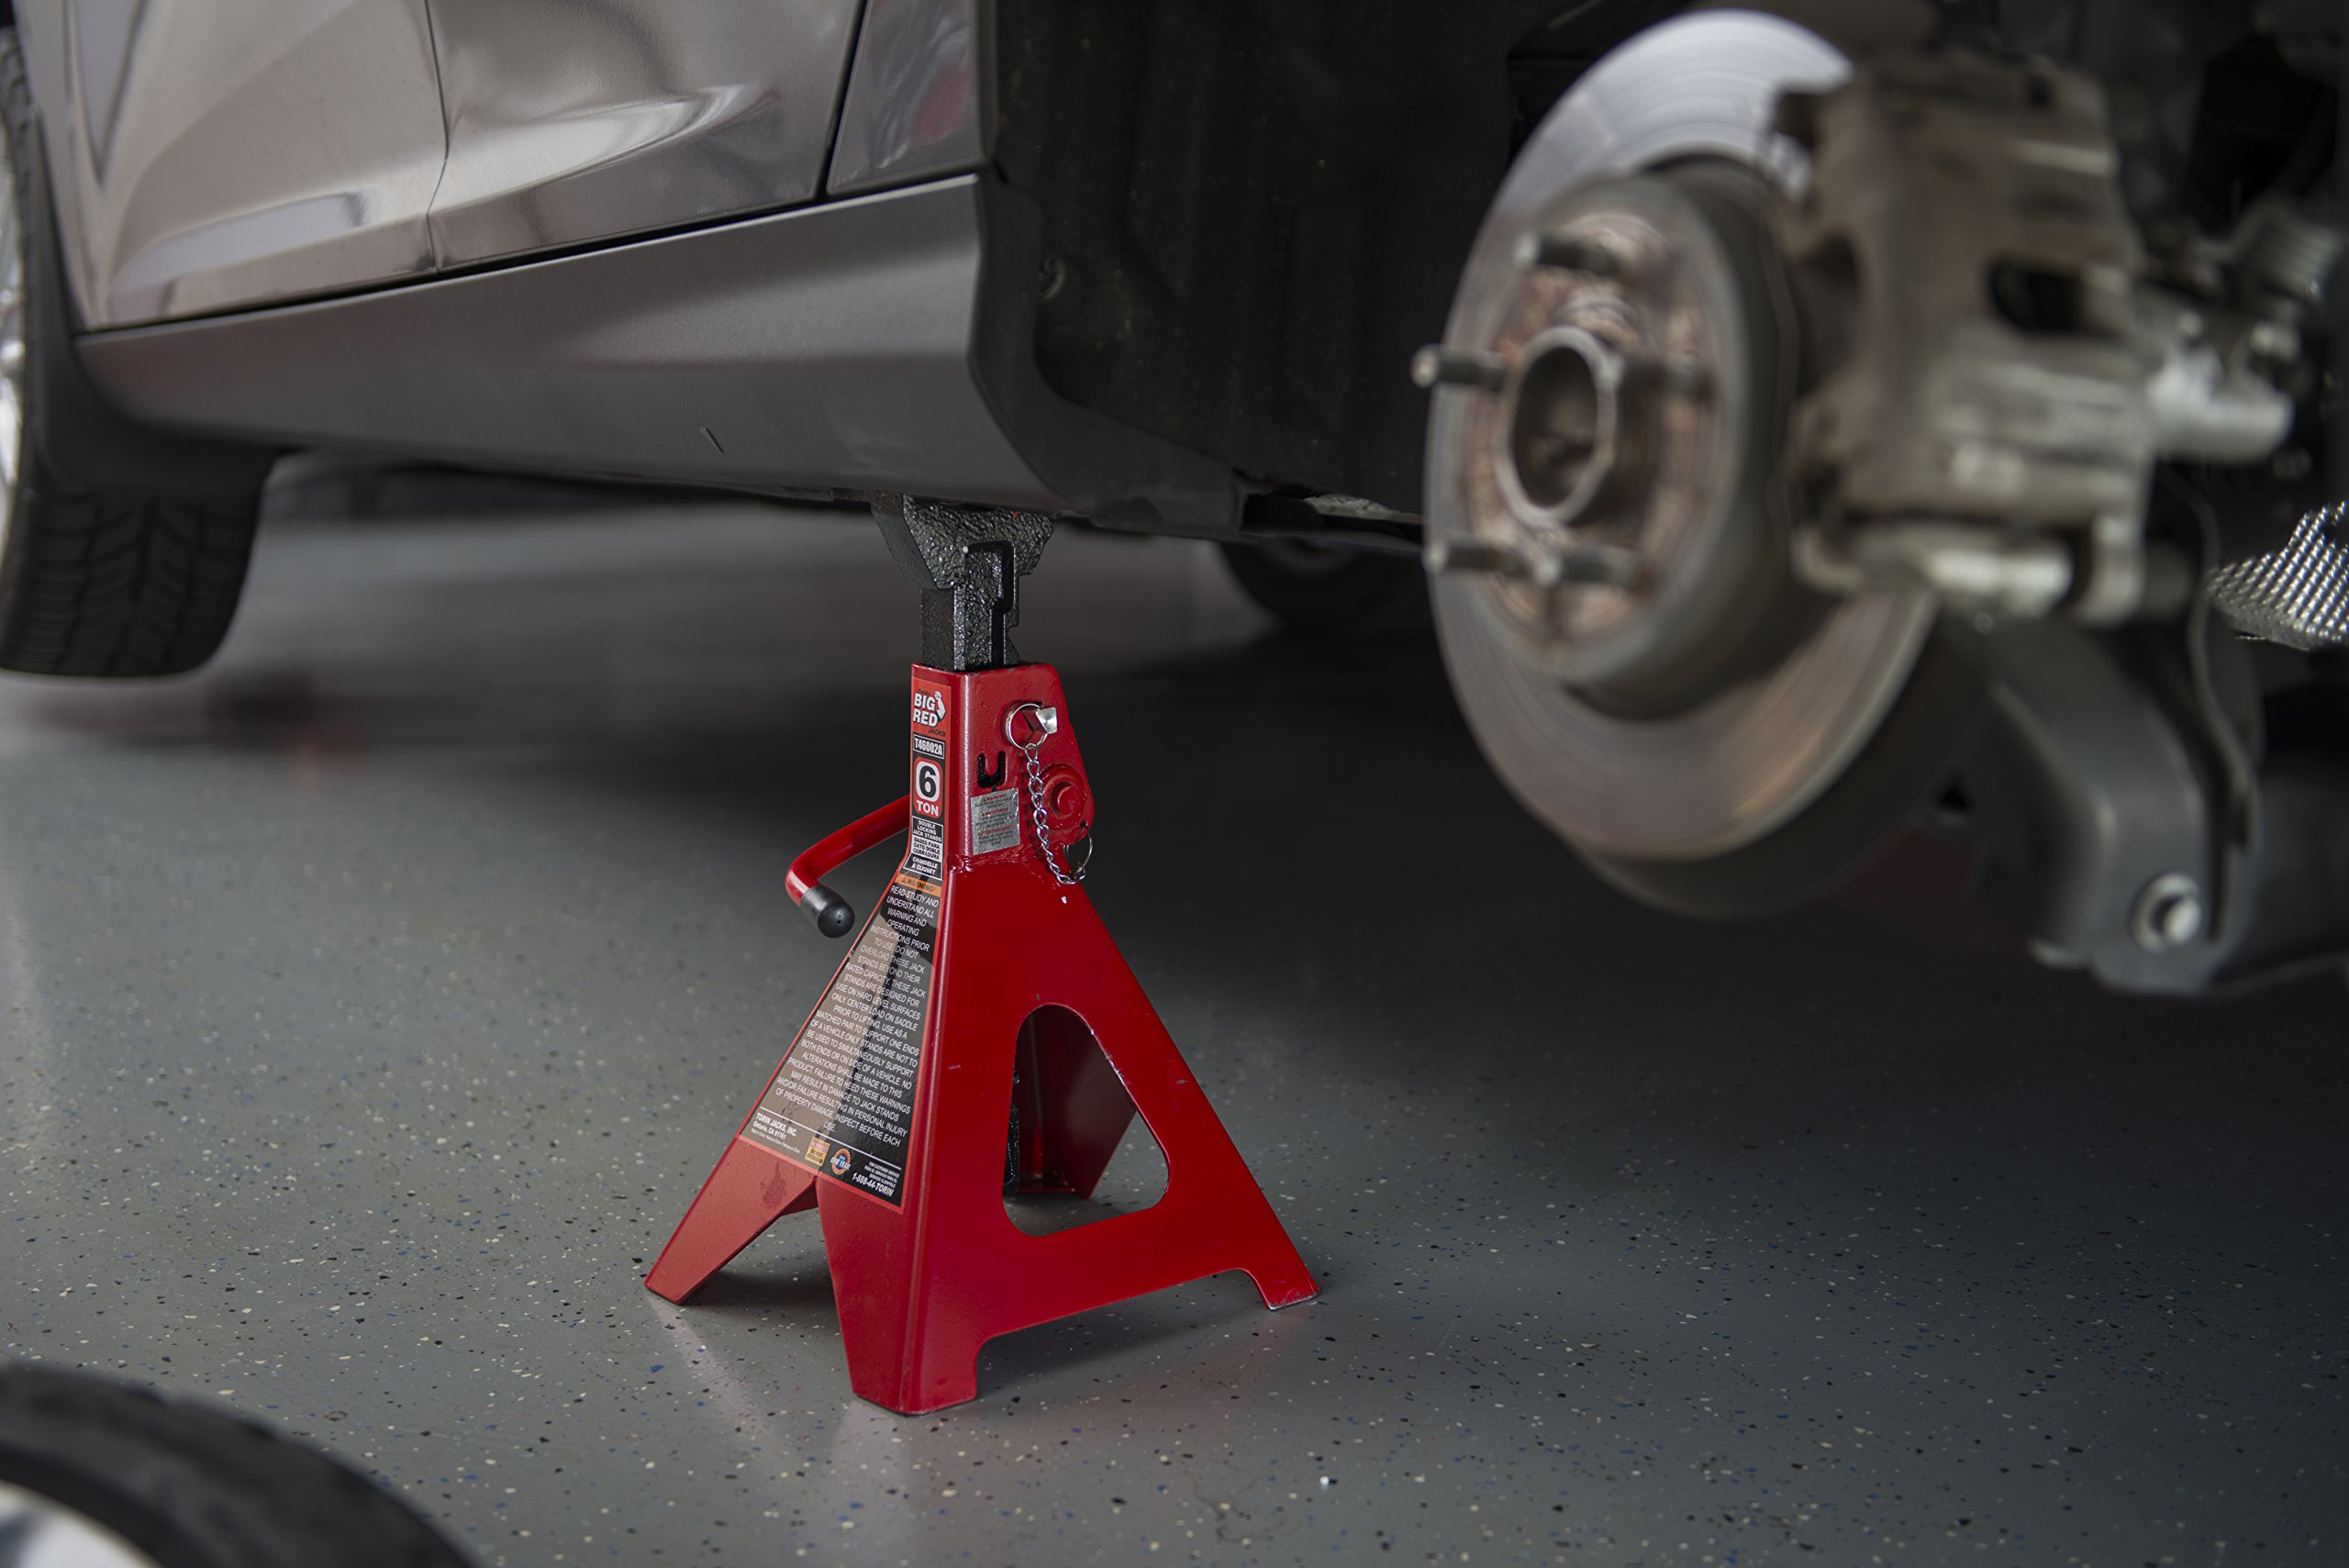 Torin Big Red Steel Jack Stands: Double Locking, 6 Ton Capacity, 1 Pair by Torin (Image #14)